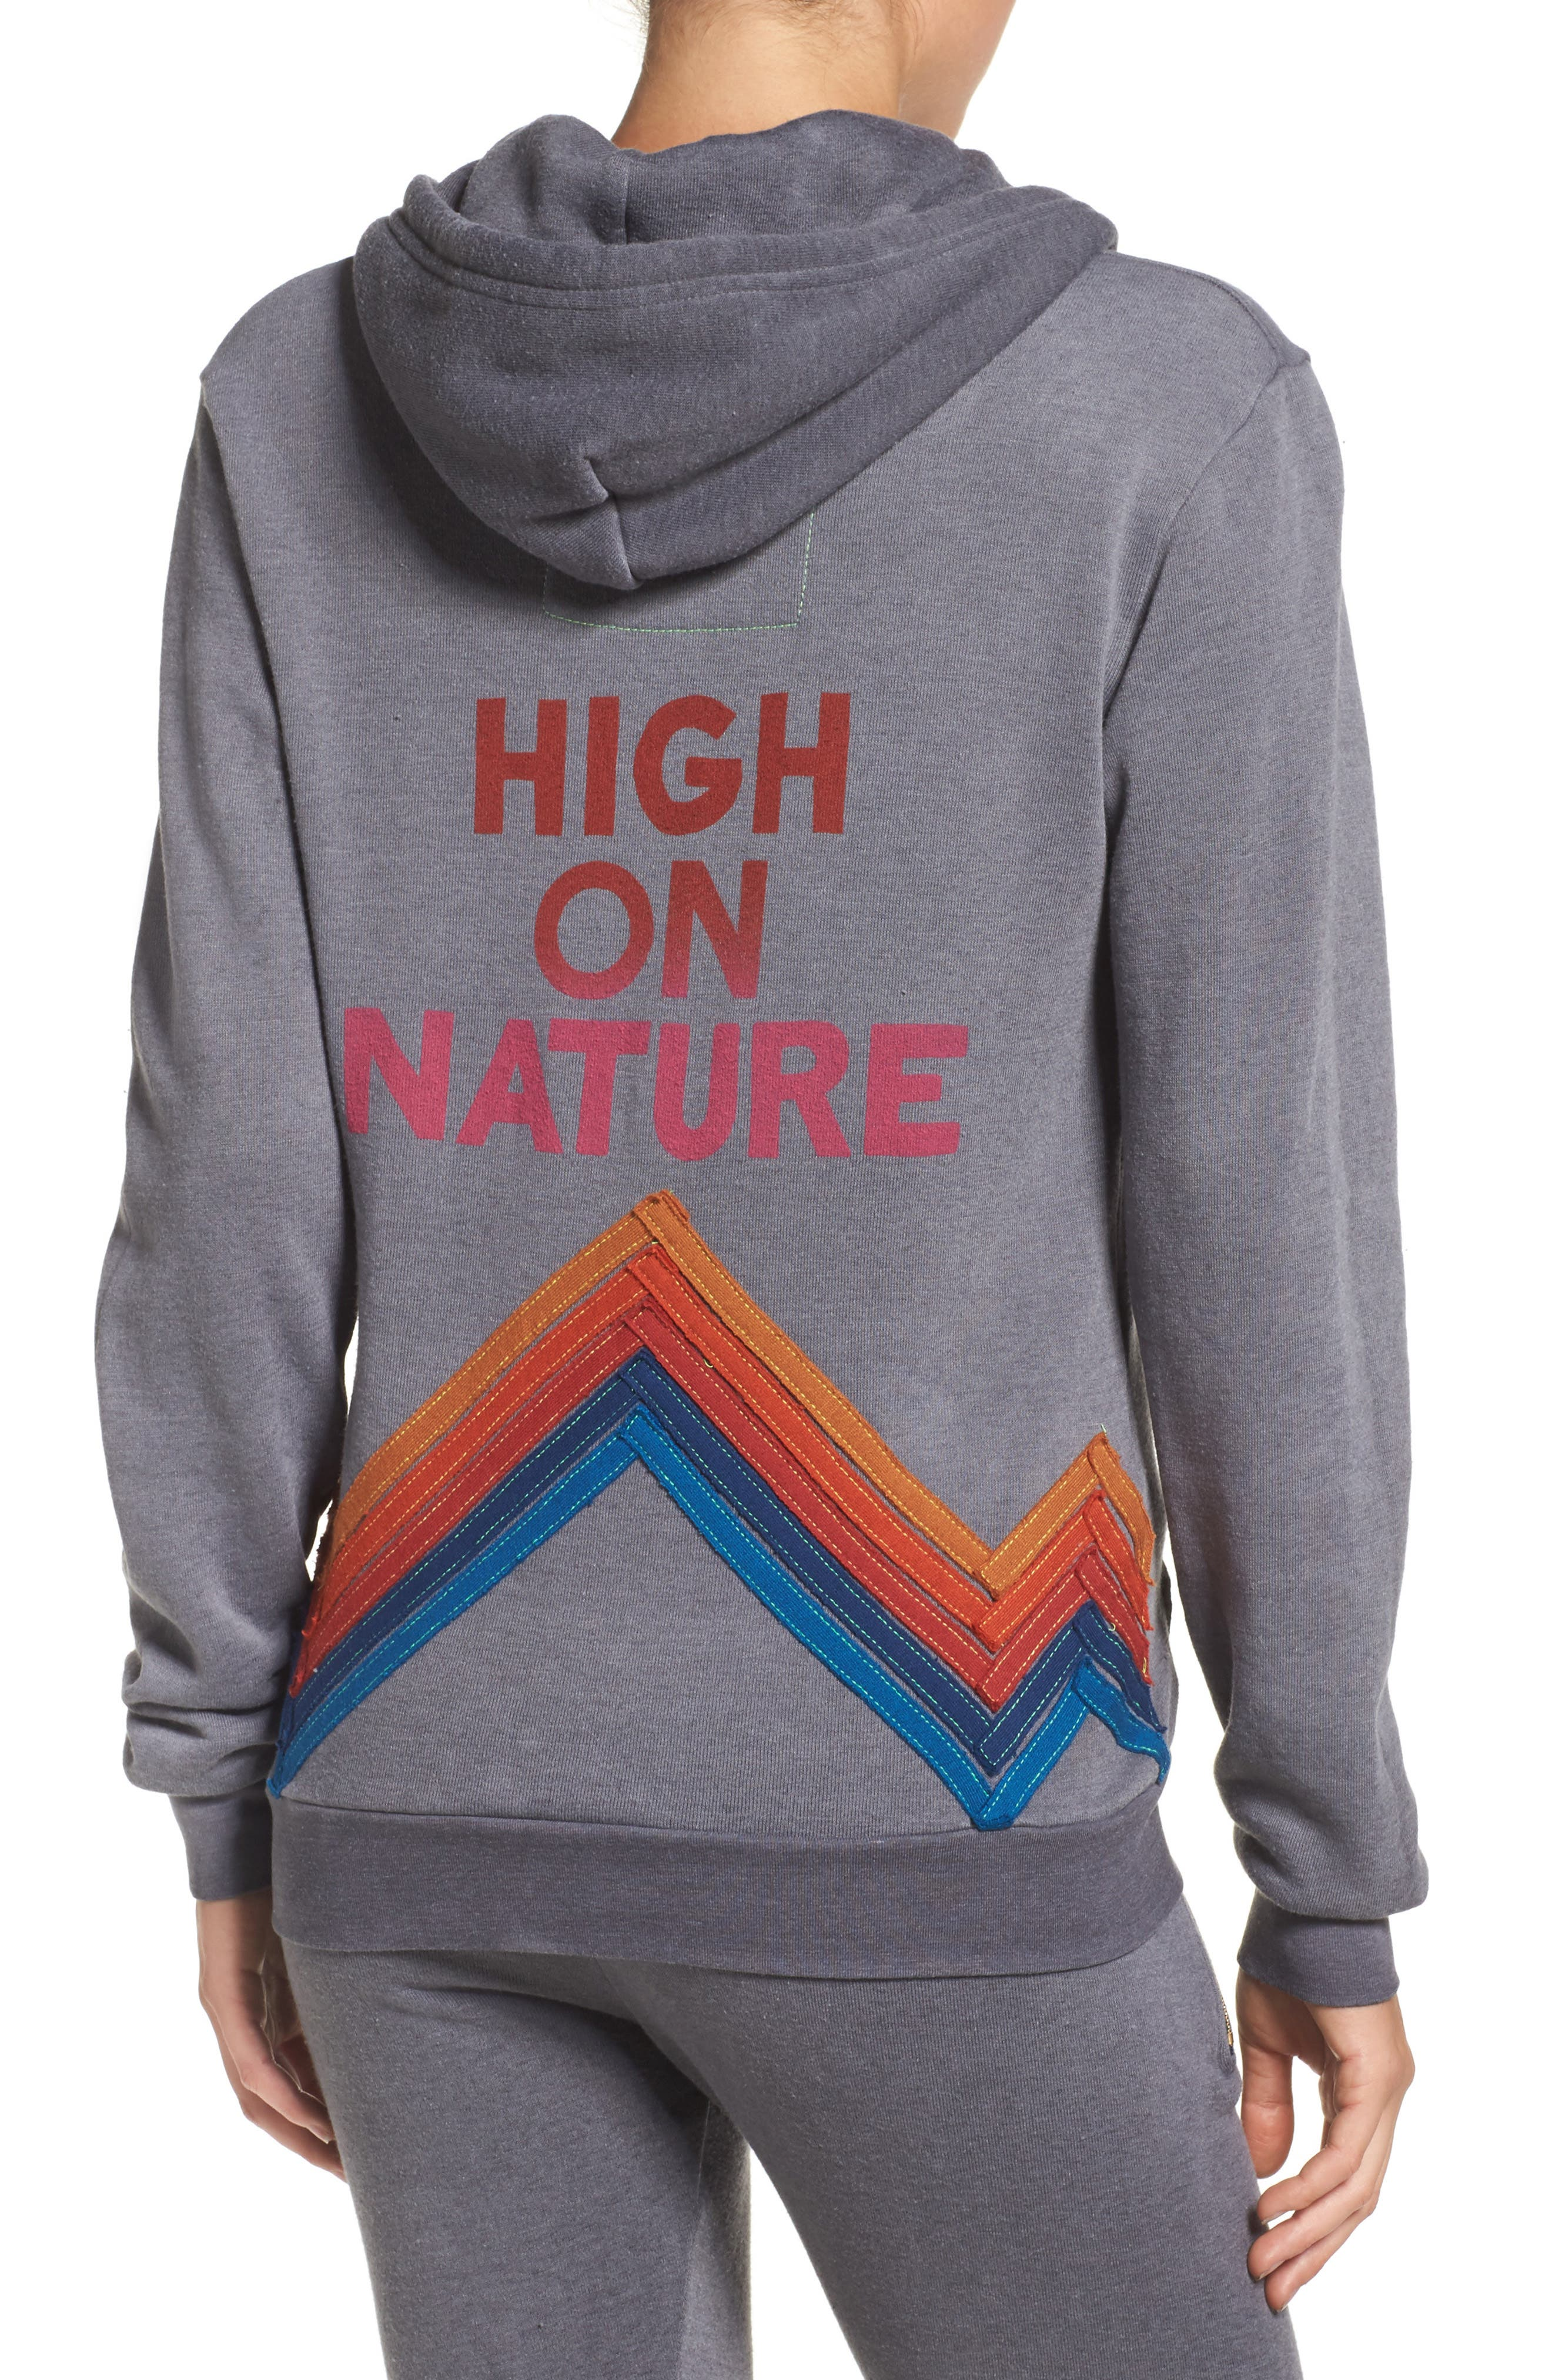 High on Nature Hoodie,                             Alternate thumbnail 2, color,                             020